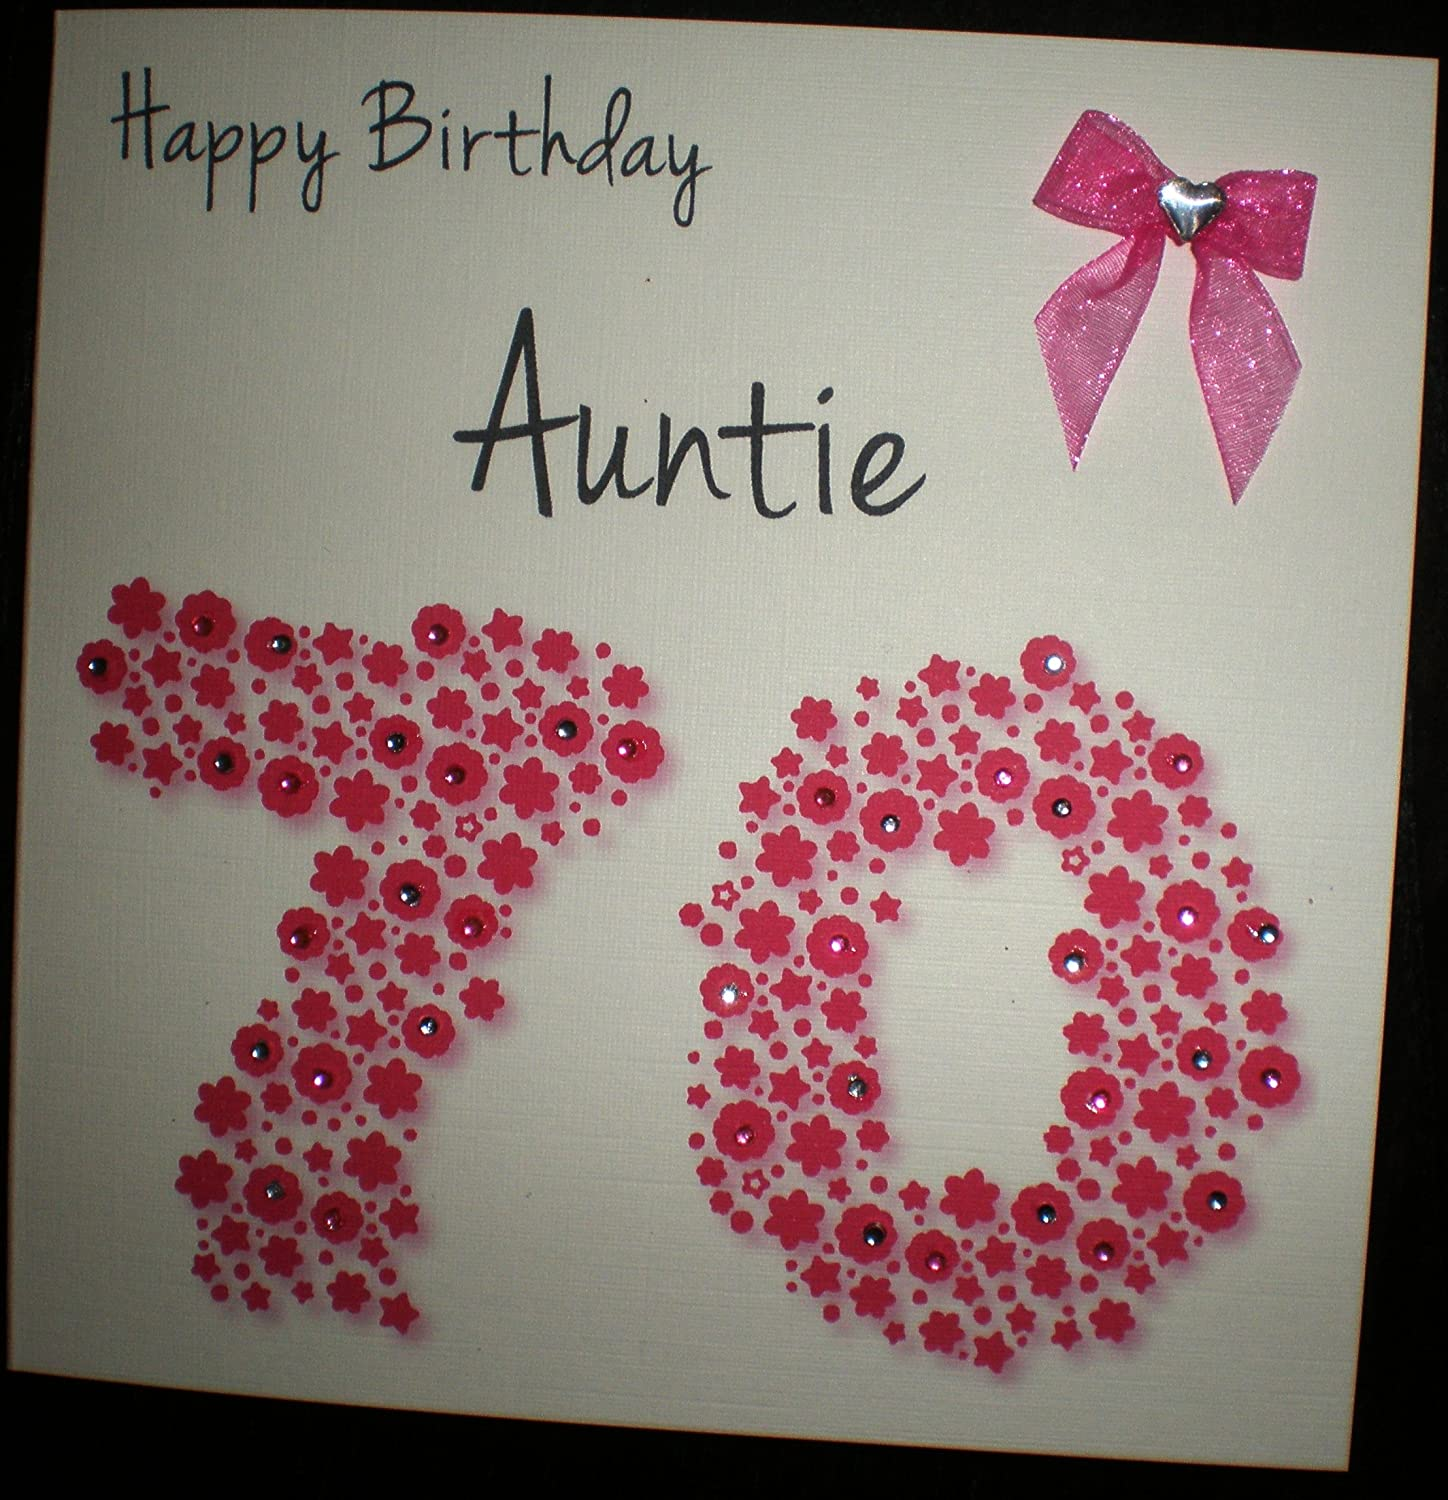 Happy birthday card auntie 70th bright pink flowerbed handmade happy birthday card auntie 70th bright pink flowerbed handmade card amazon kitchen home kristyandbryce Choice Image